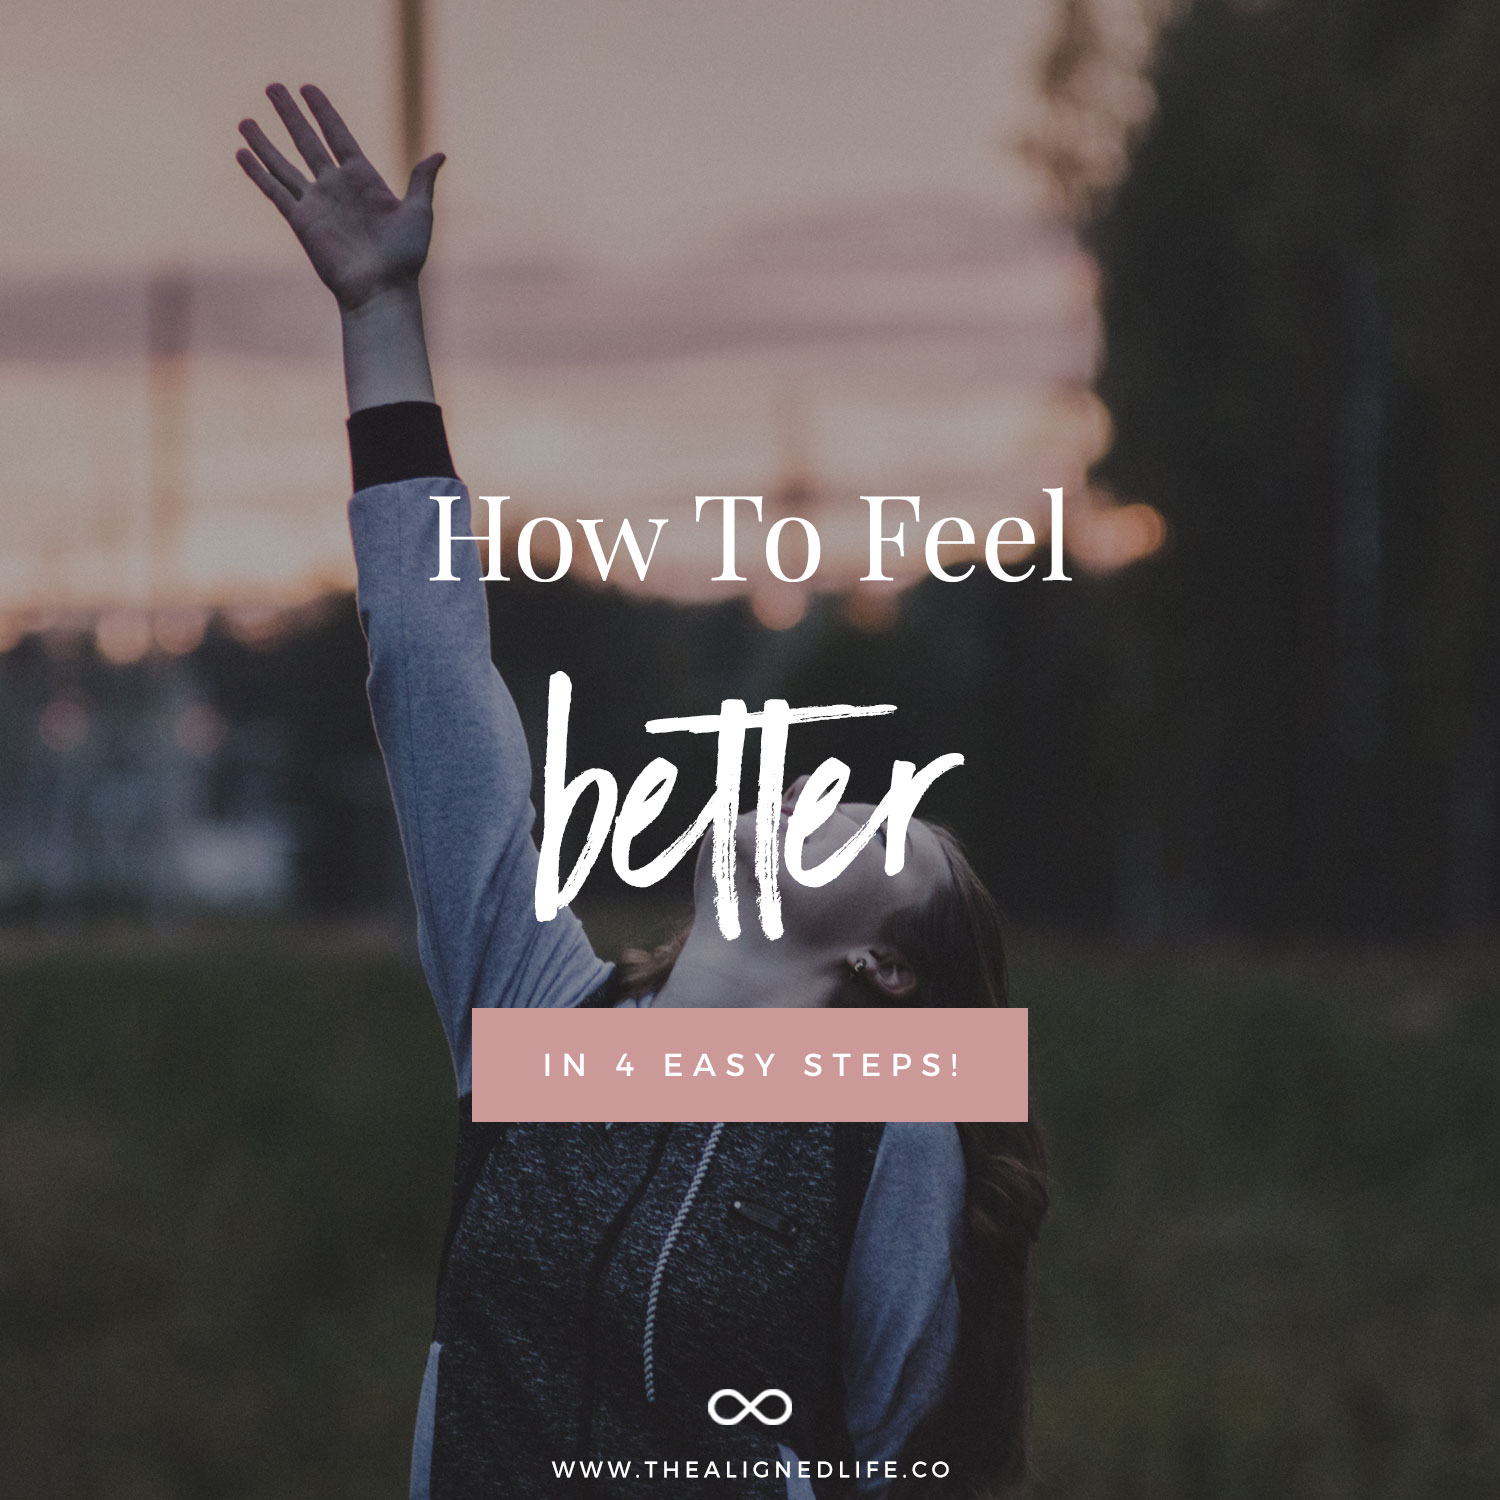 How To Feel Better: 4 Simple Steps